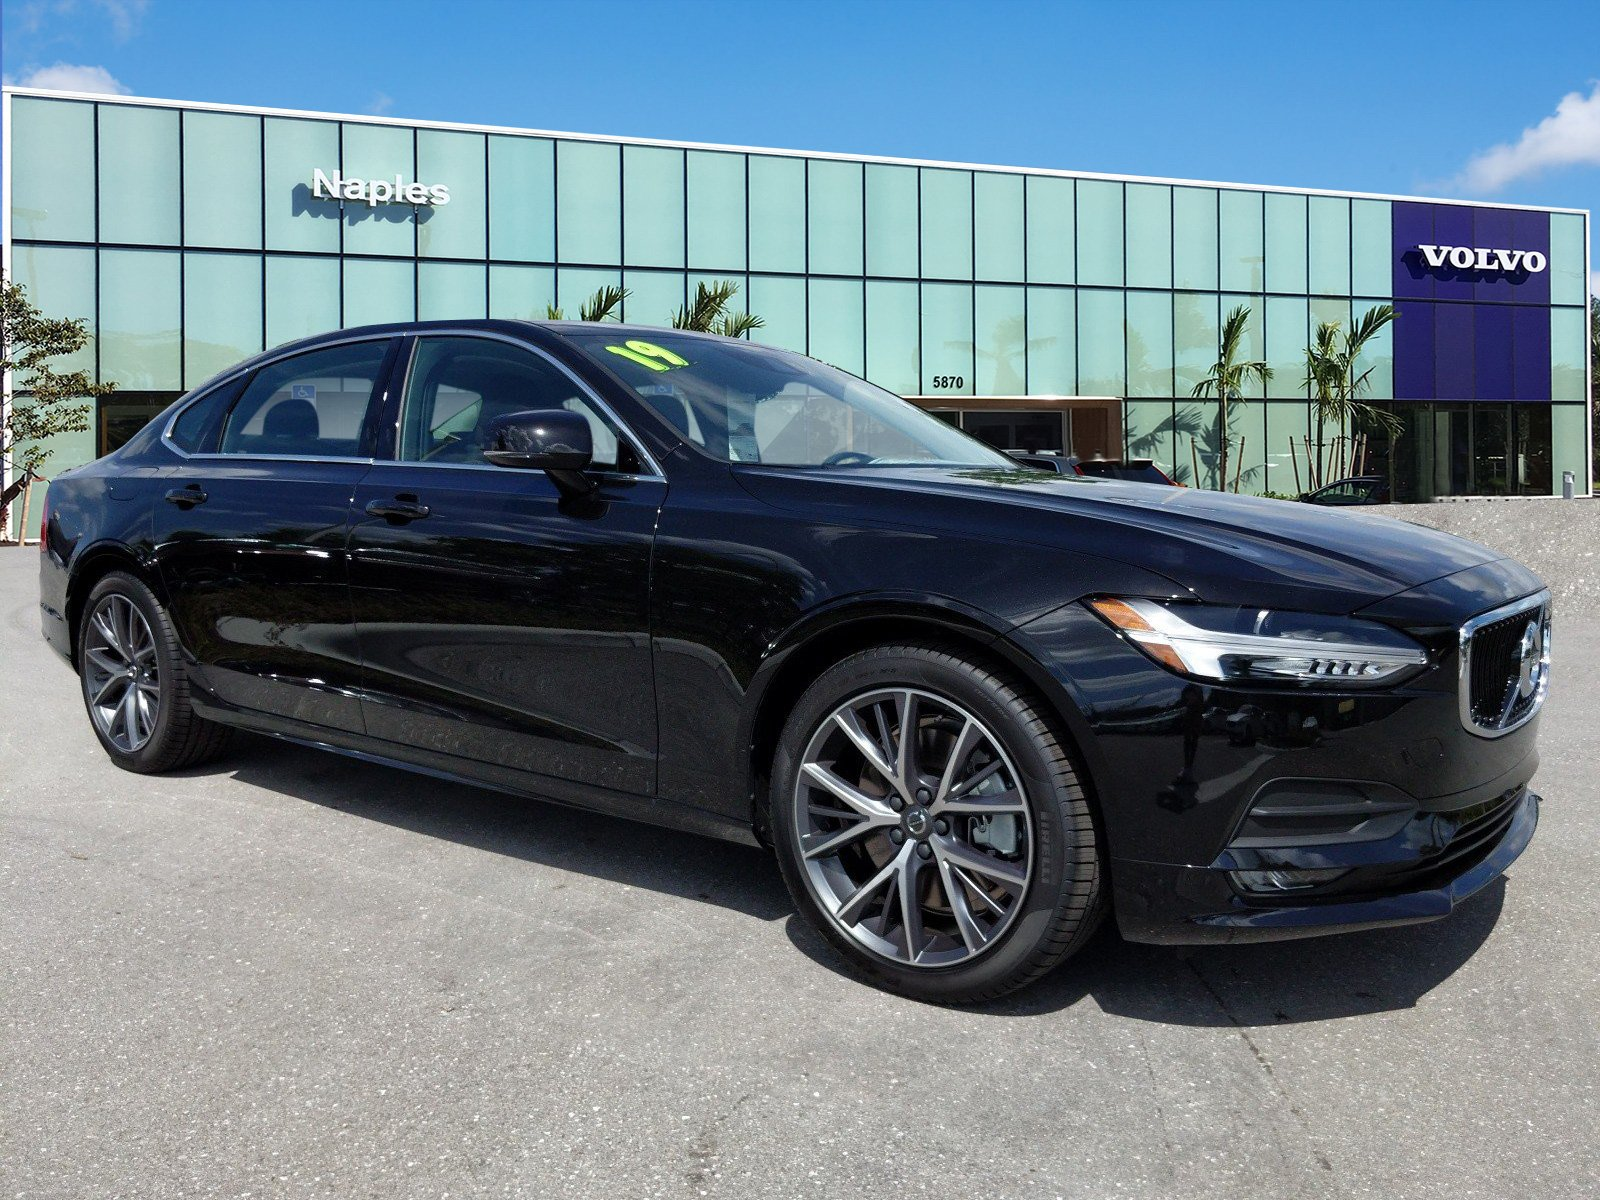 2019 New Volvo S90 For Sale In Cars Of Naples Vin V079363 Seat Post Suspension Zoom Ready Size 316